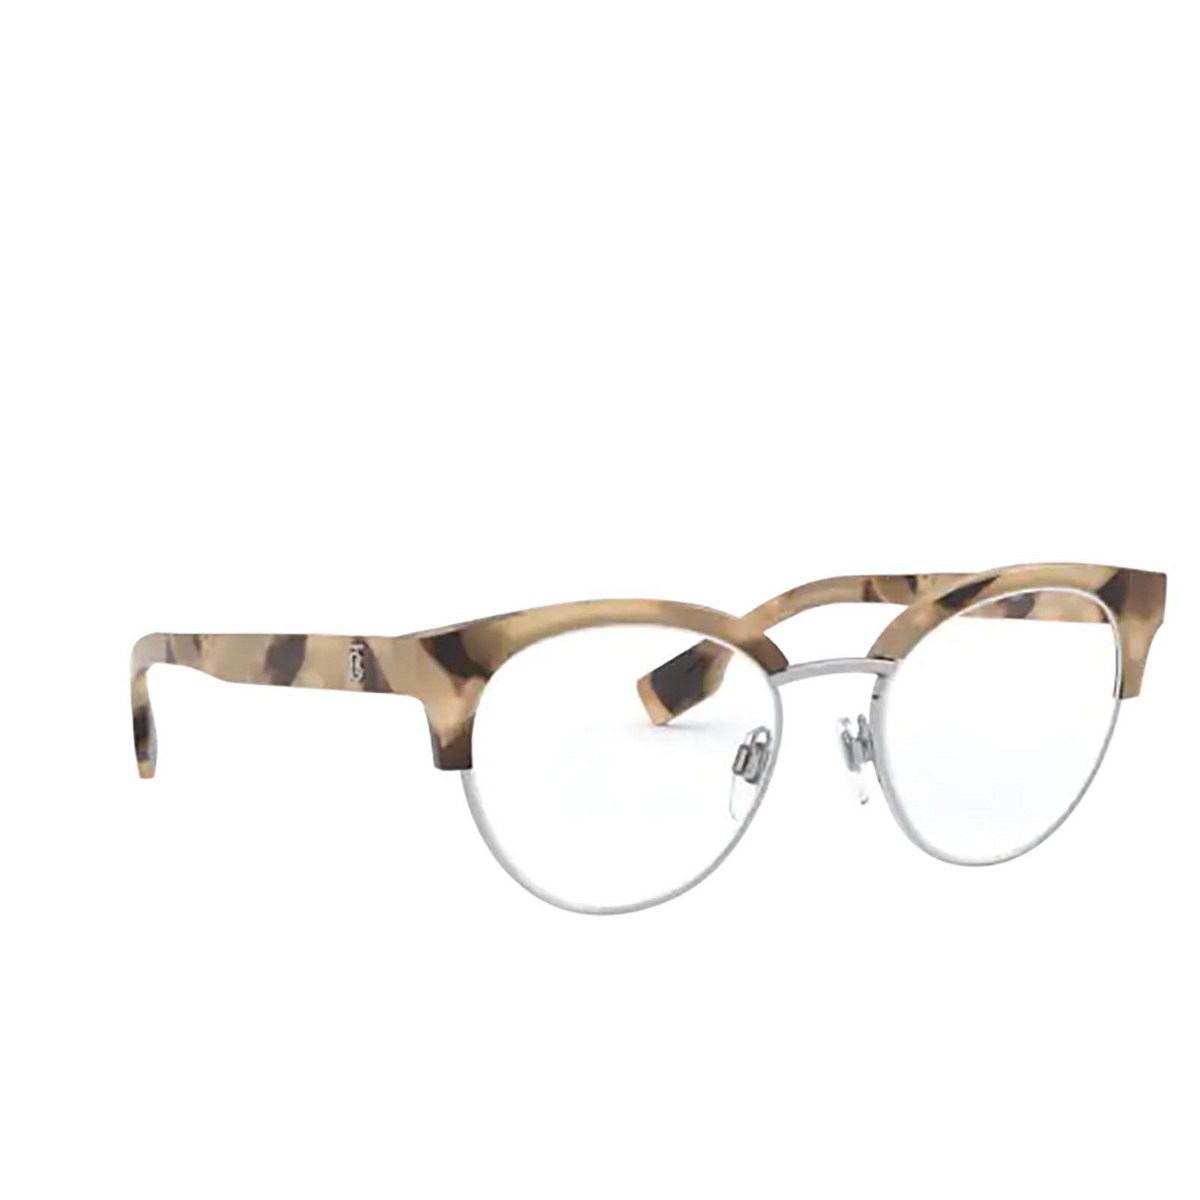 Burberry® Round Eyeglasses: Birch BE2316 color Spotted Horn / Silver 3501 - three-quarters view.